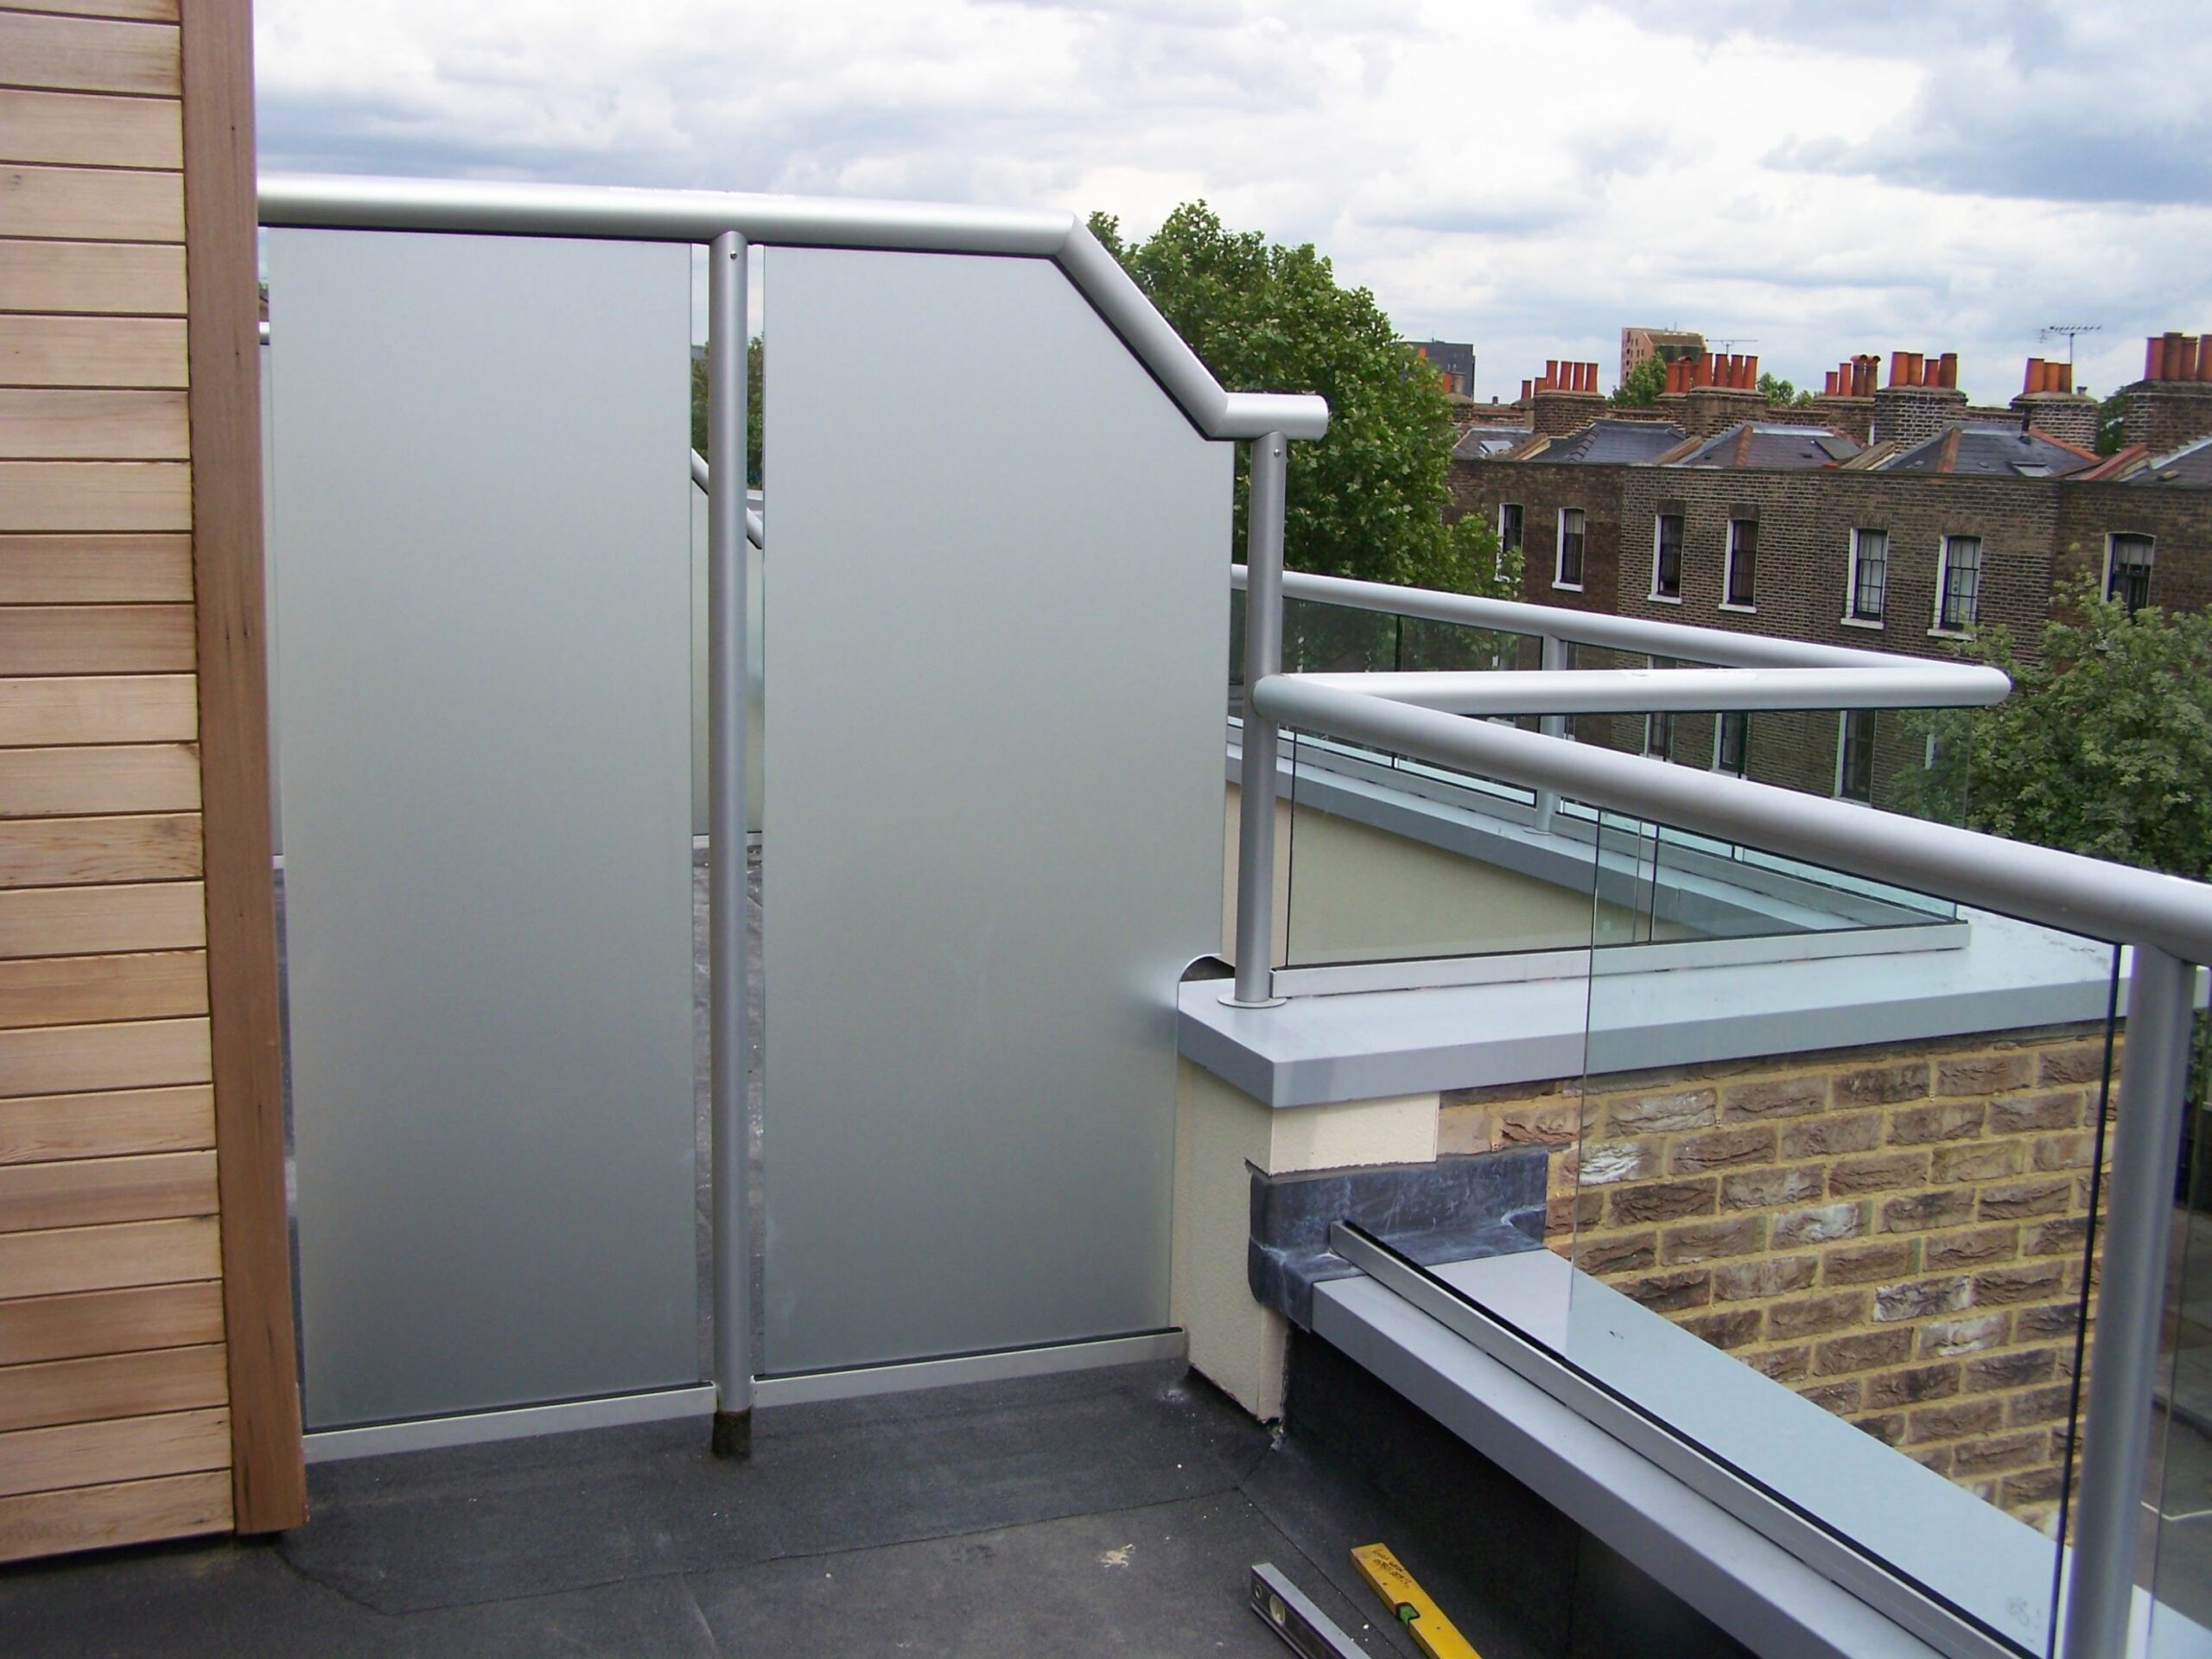 Glass Balcony with Privacy Screen | Outdoor privacy, Privacy ..